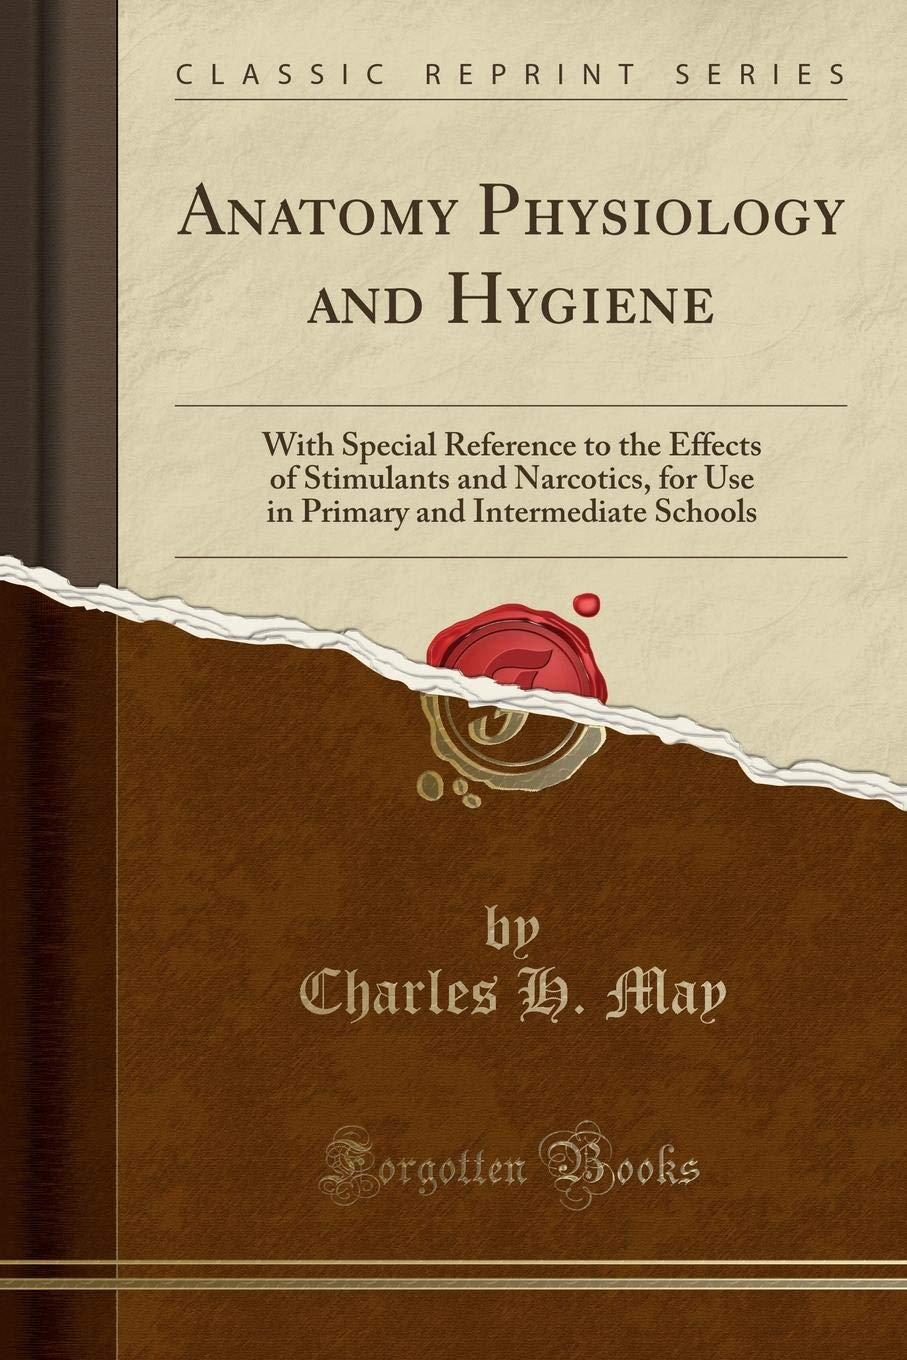 Anatomy Physiology and Hygiene: With Special Reference to the